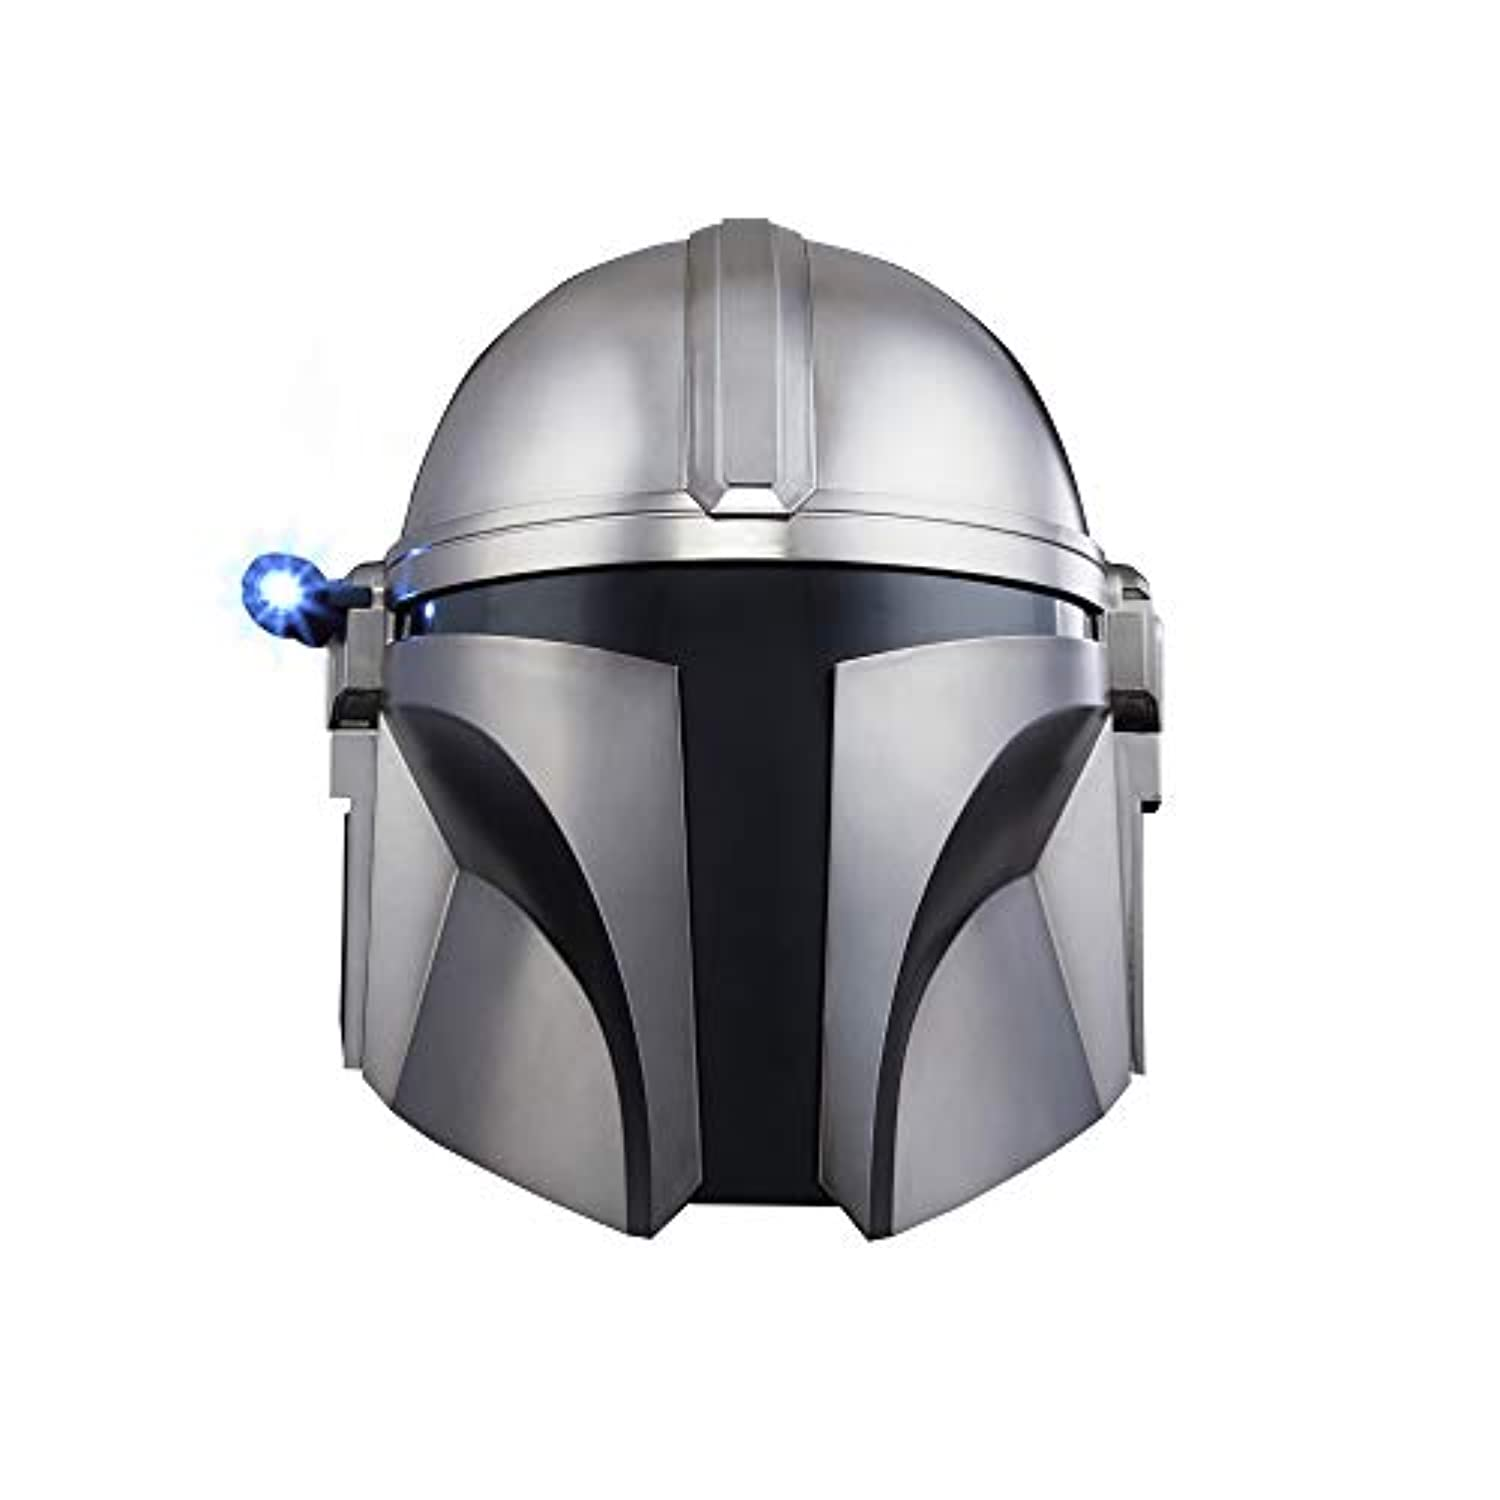 Star Wars Black Series The Mandalorian Premium Electonic Helmet-MercadoGames.com